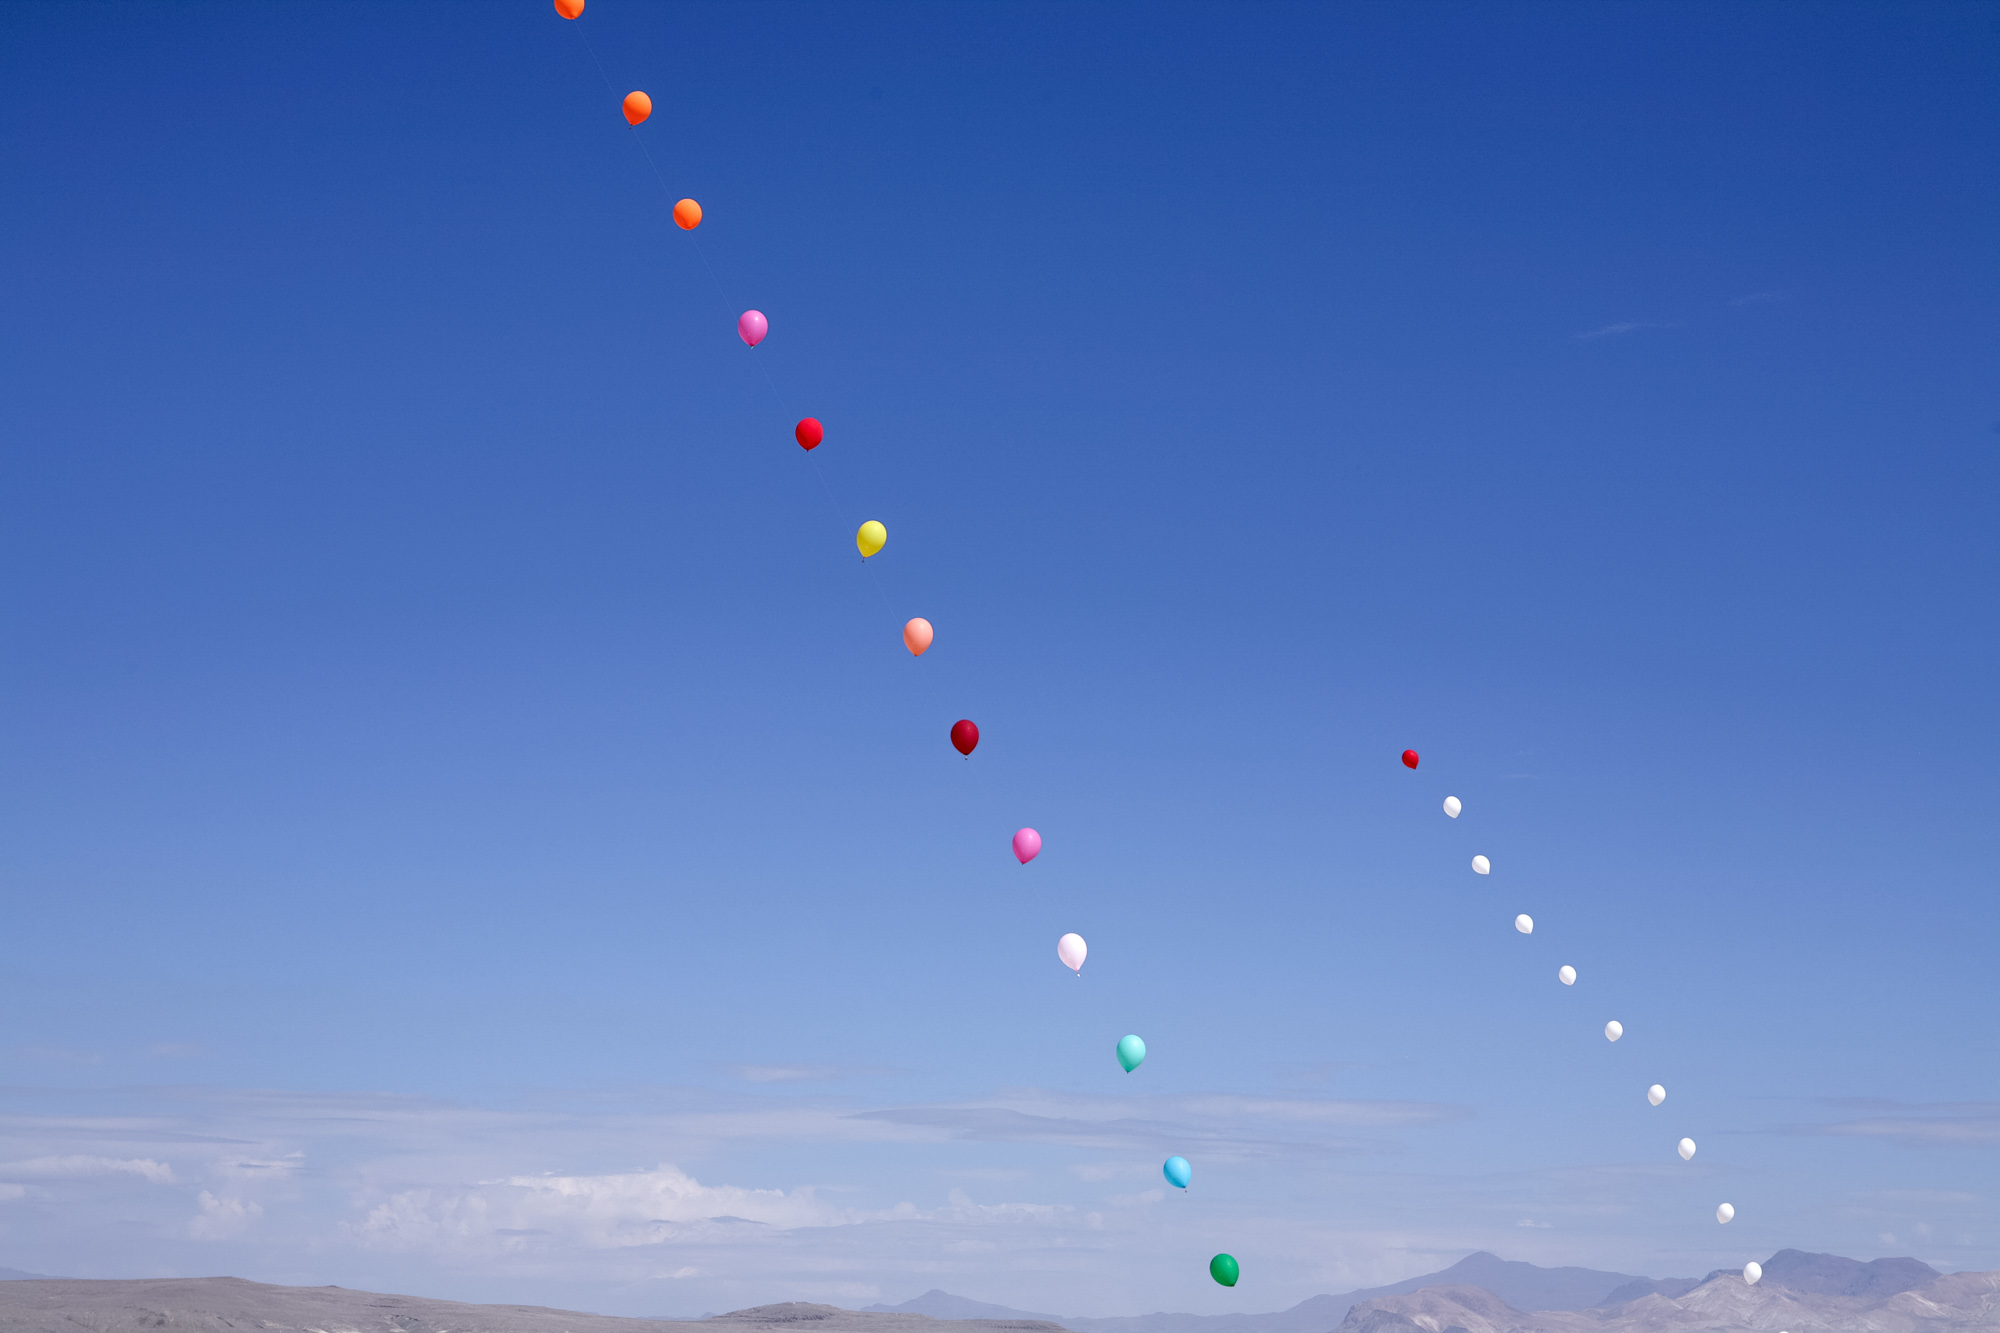 balloons in the air, with bells